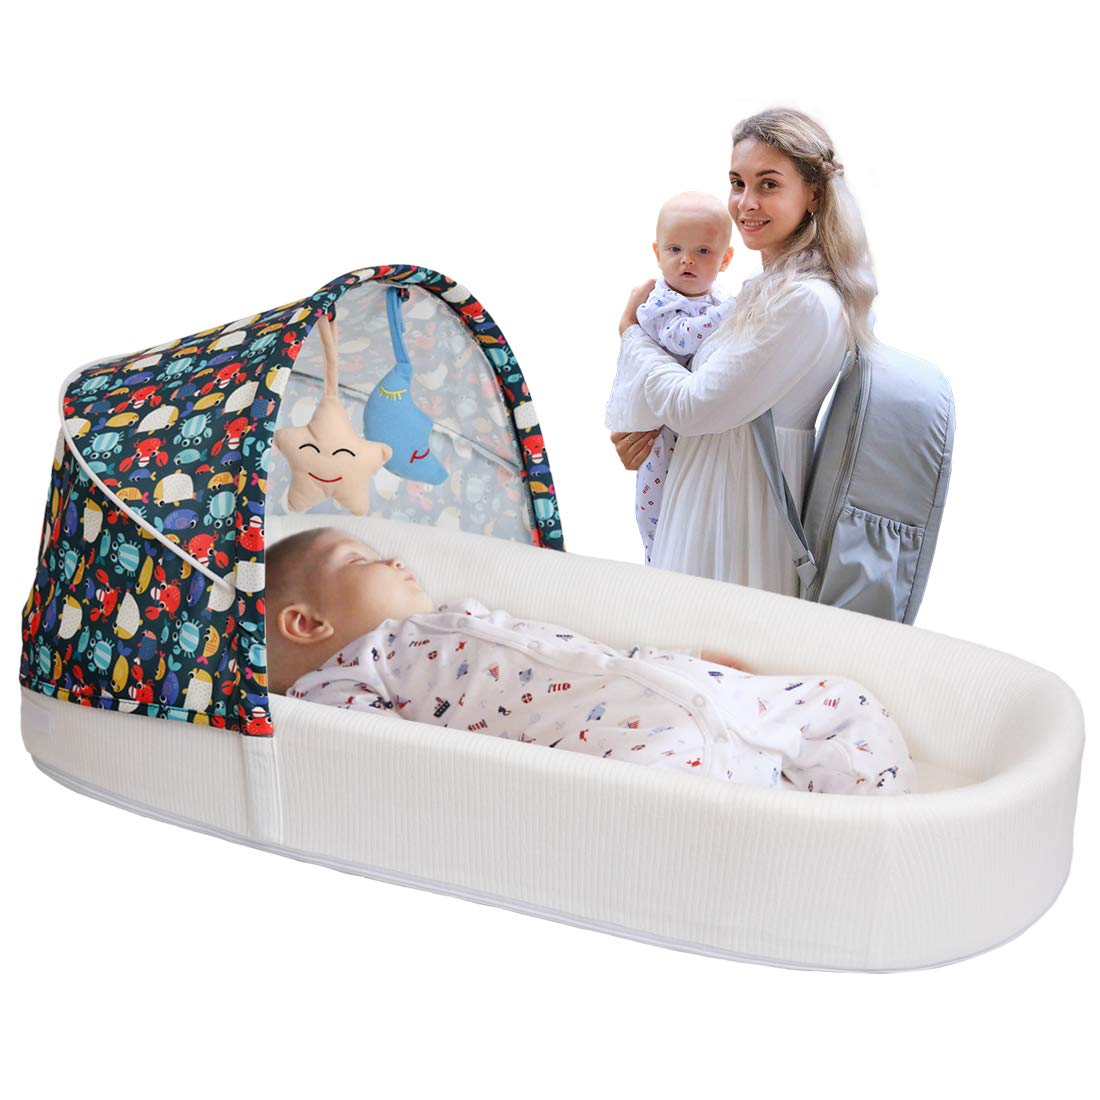 MTWML Portable Baby Bassinets,Travel Baby Bed,Soft Cotton Co Sleeping Crib with Mosquito Net and Toys,Essentials Baby Lounger for 0-8 Months Newborn Boy Girls Baby